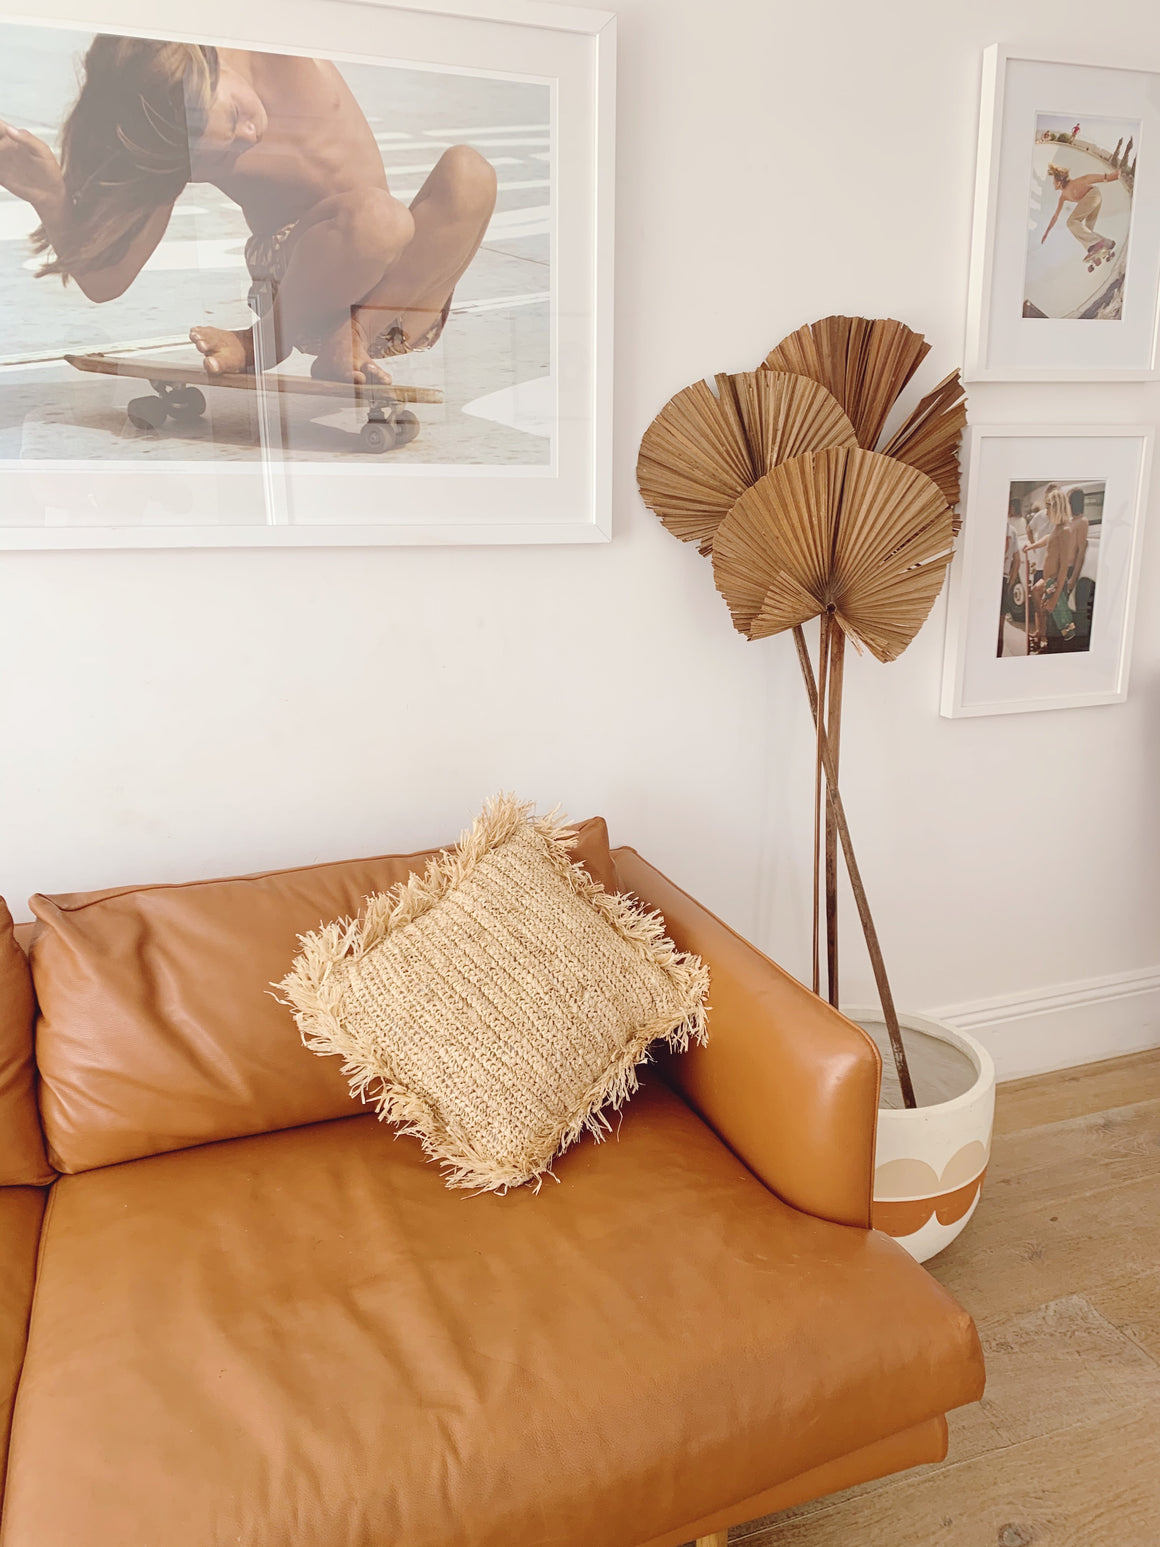 Commune Fringe Raffia Floor Cushions